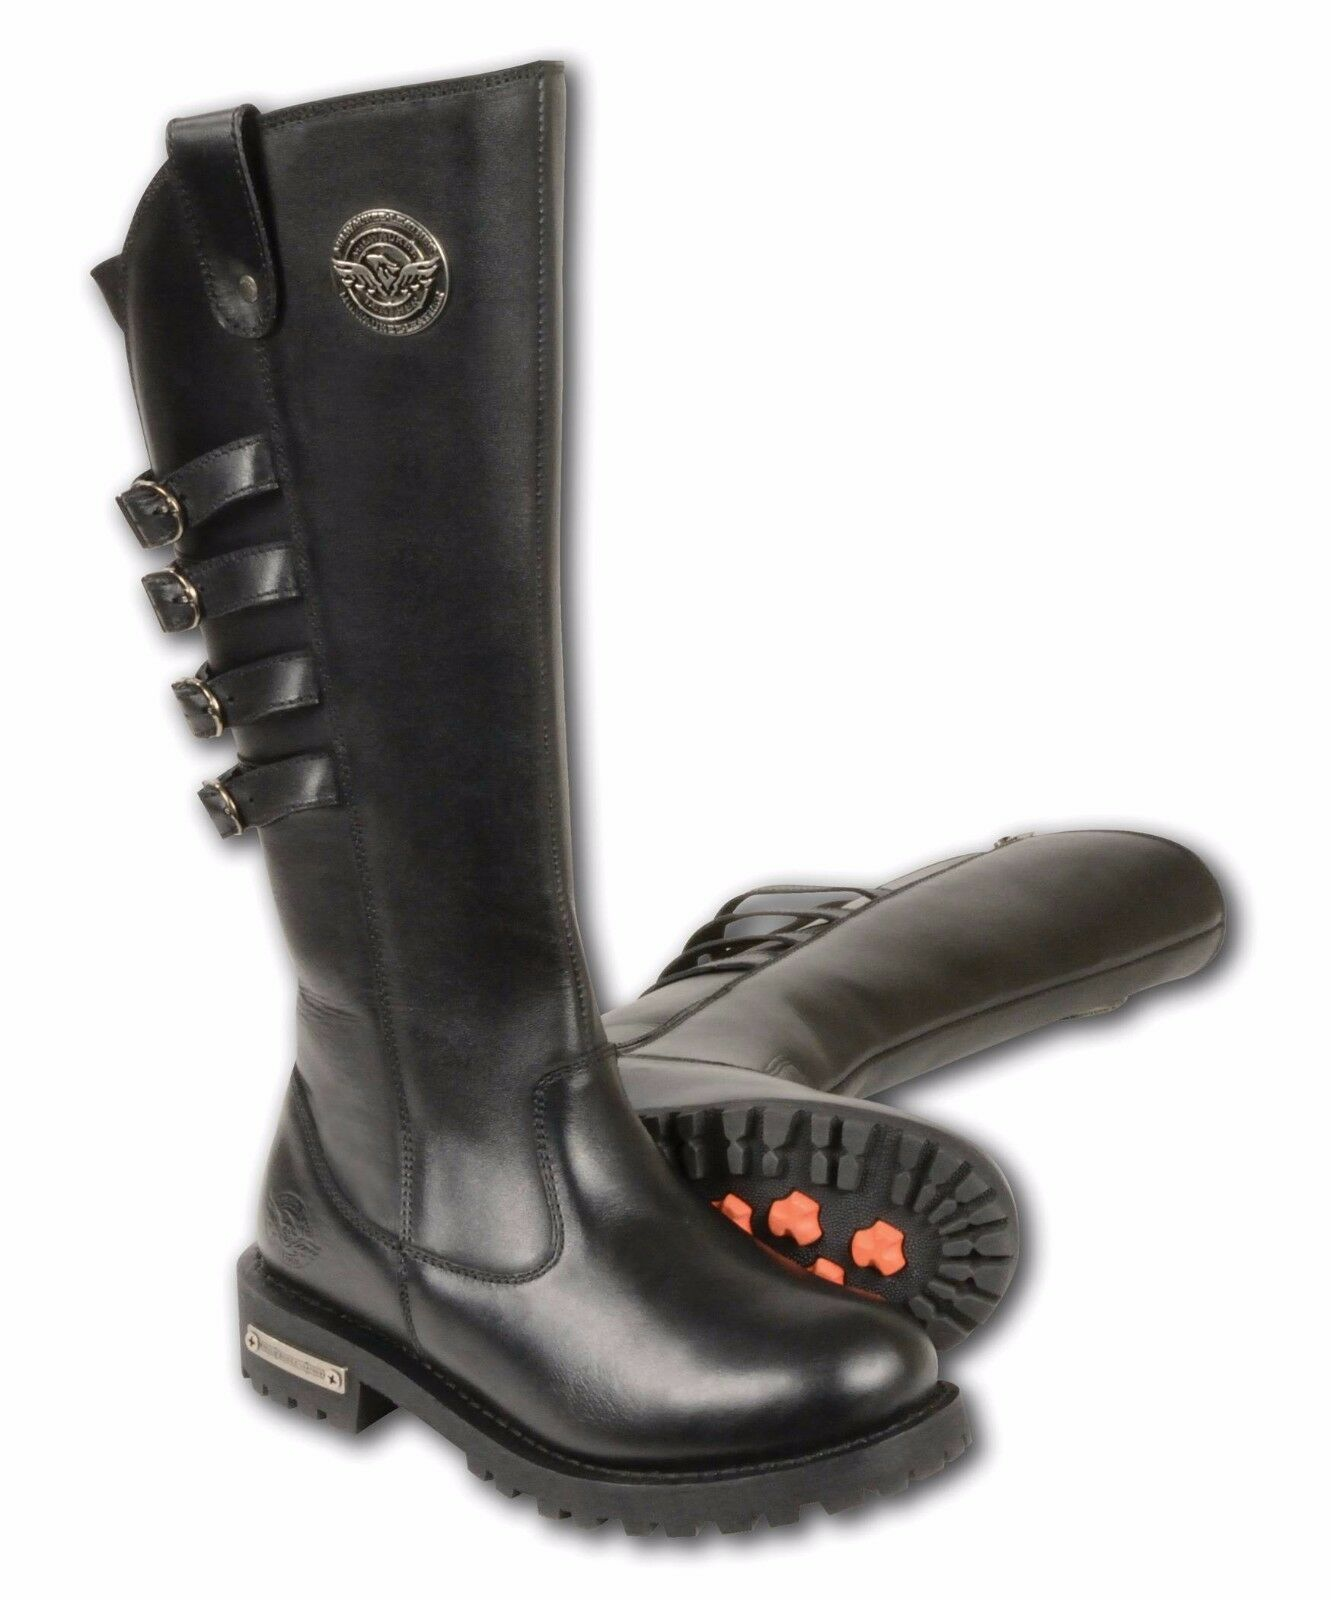 Ladies Black Leather 15  Tall High Rise Boots, Square Toe, 4 Calf Buckles